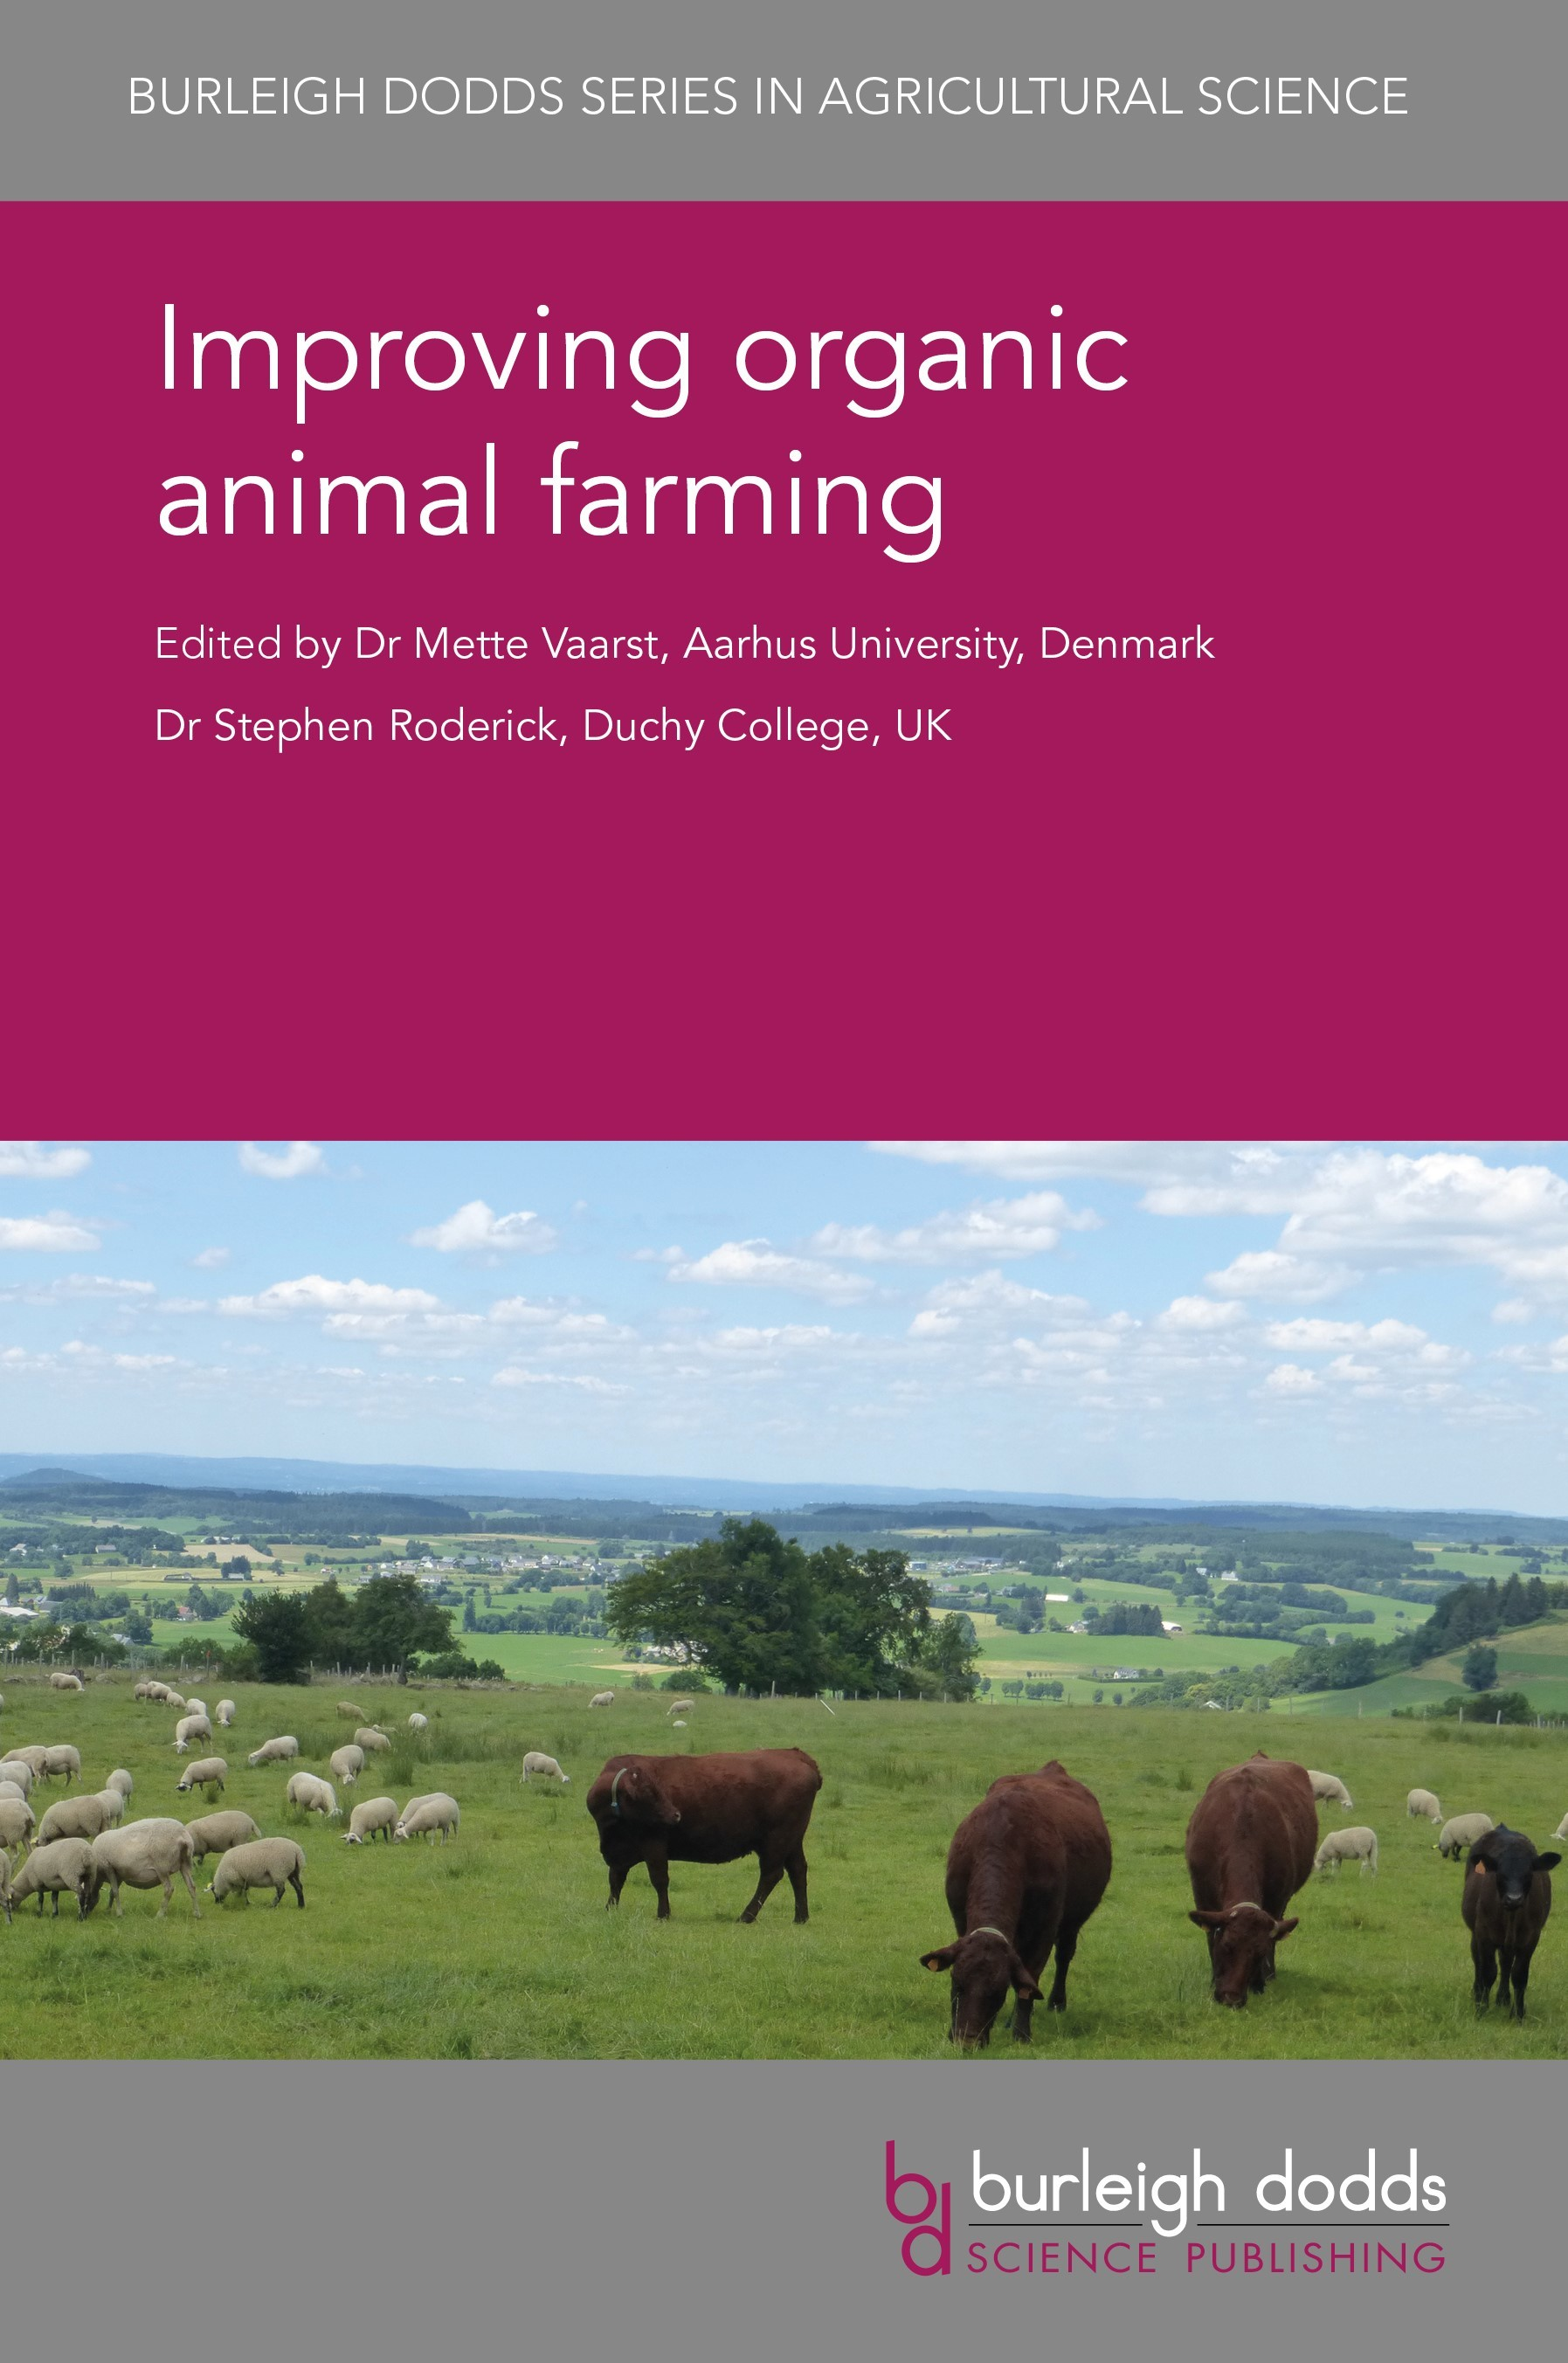 Burleigh Dodds Science Publishing | Agricultural Science in Print